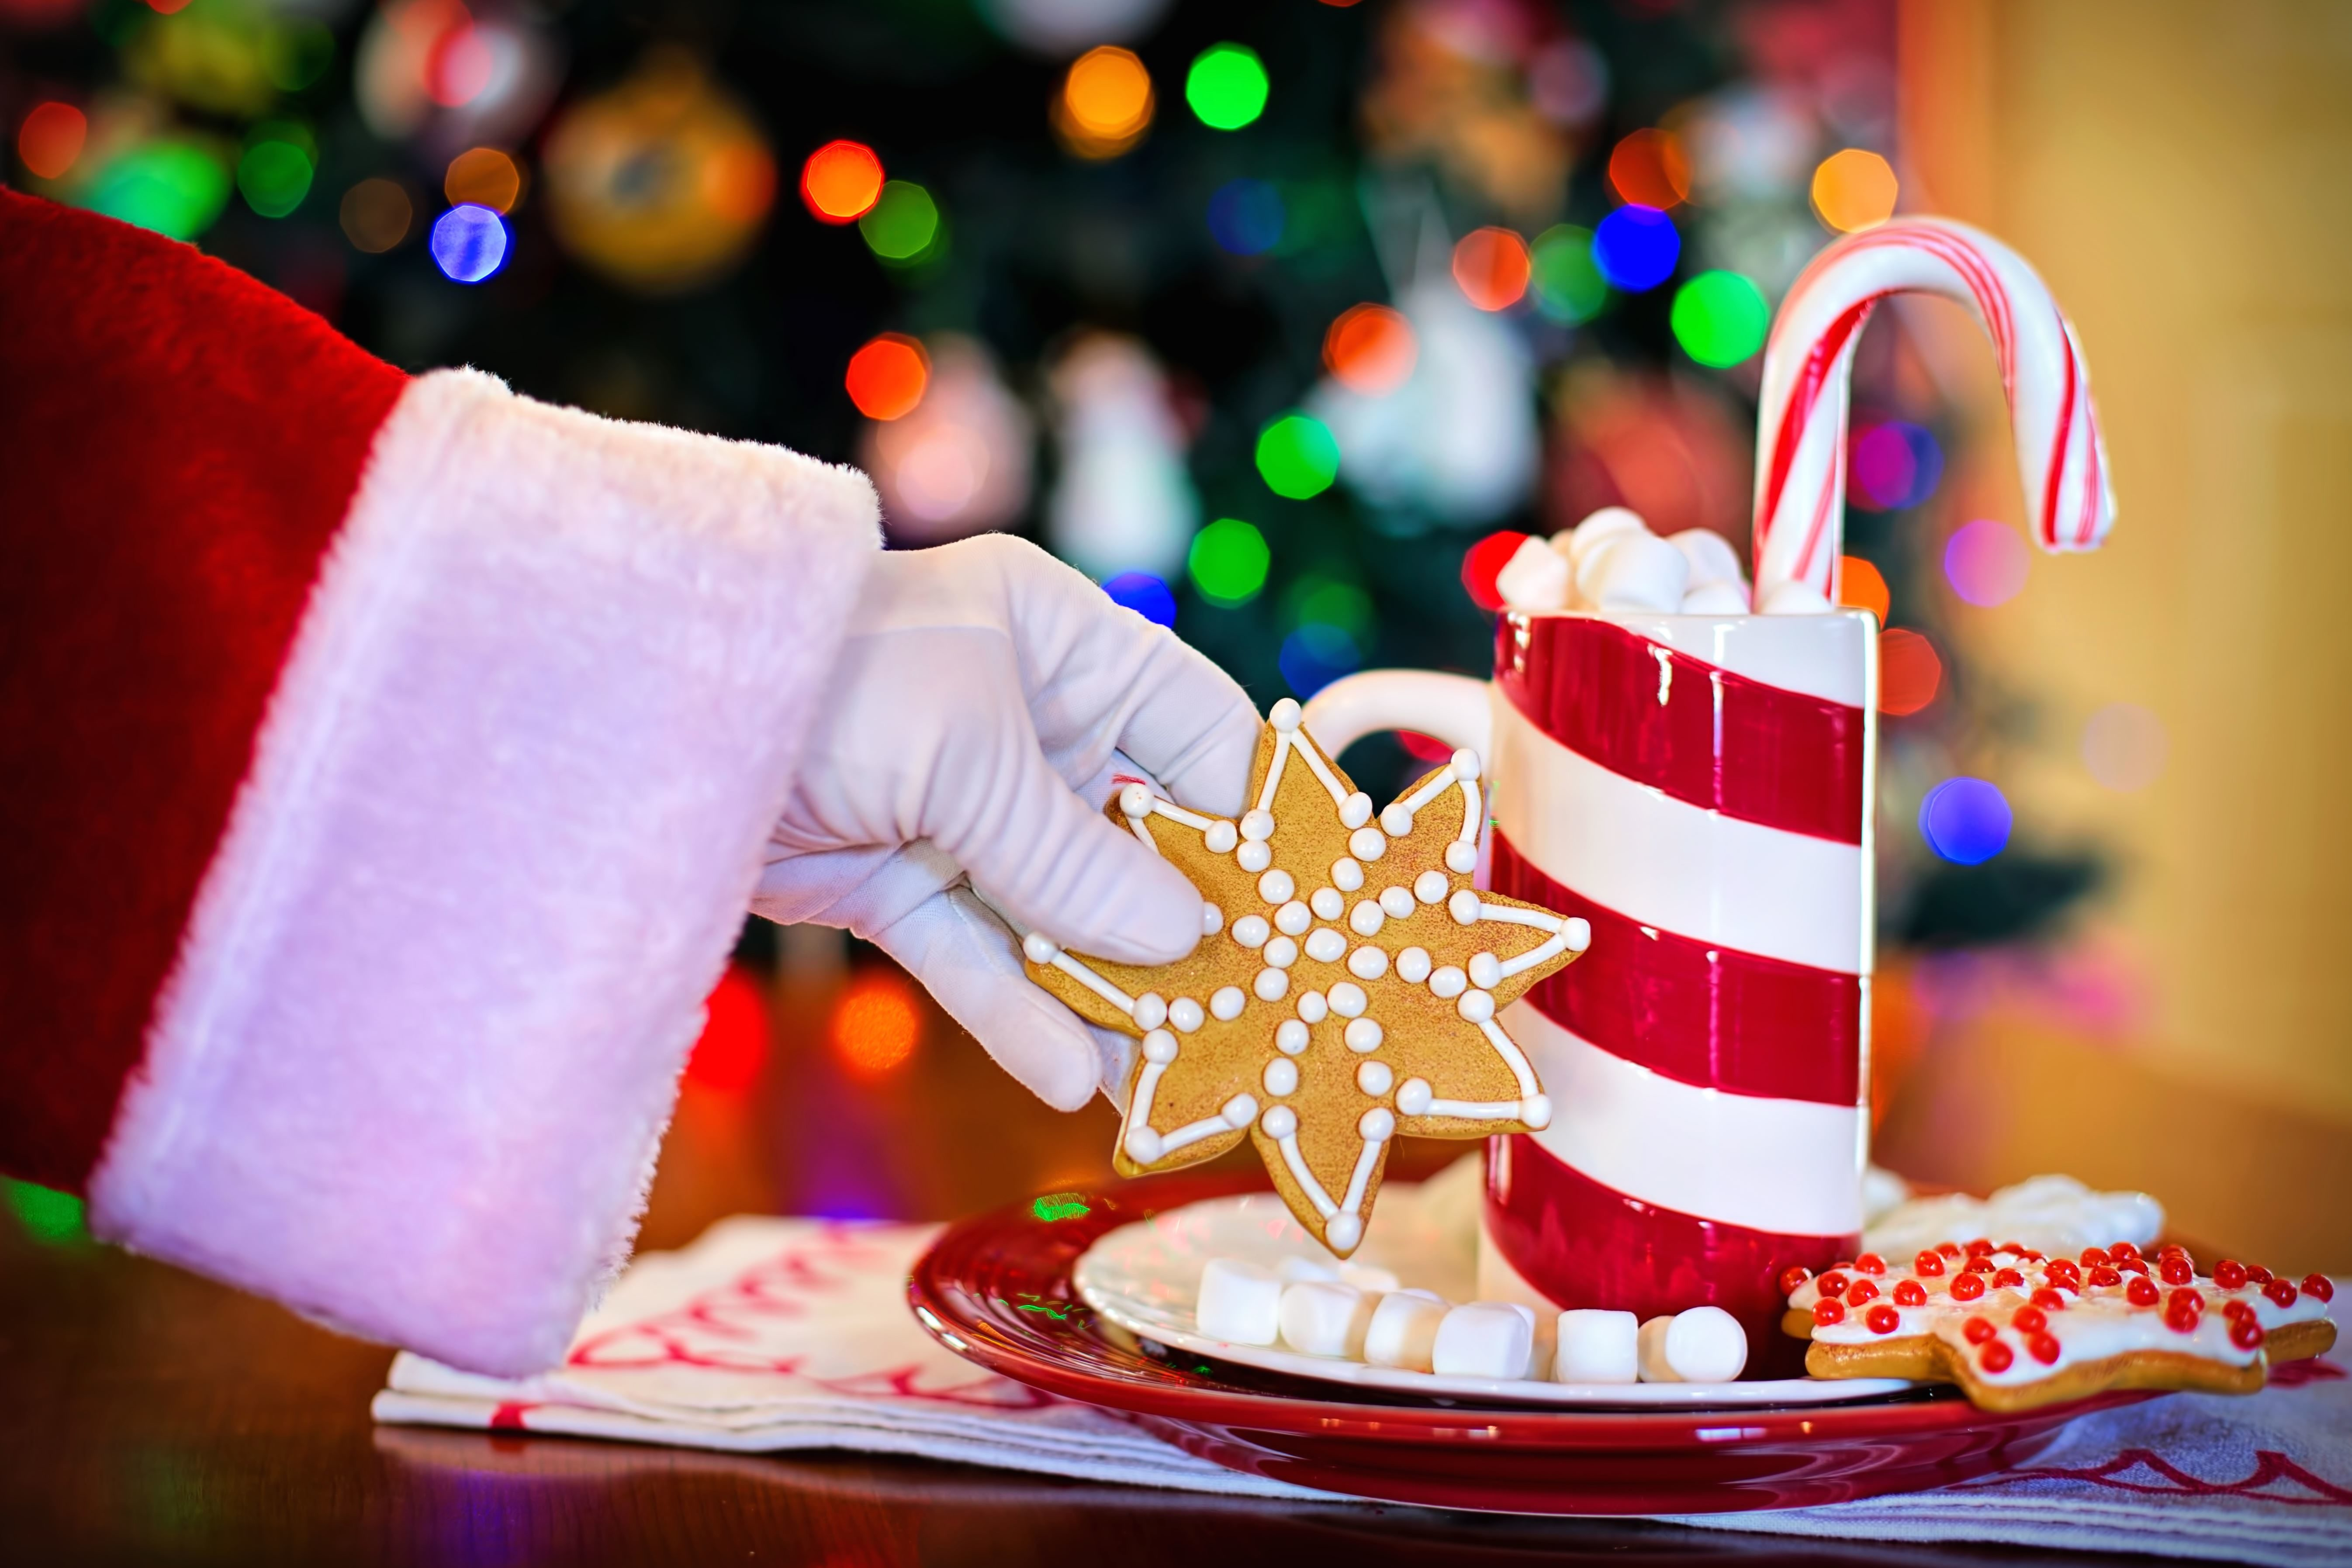 Free picture Christmas surprise sweet dessert